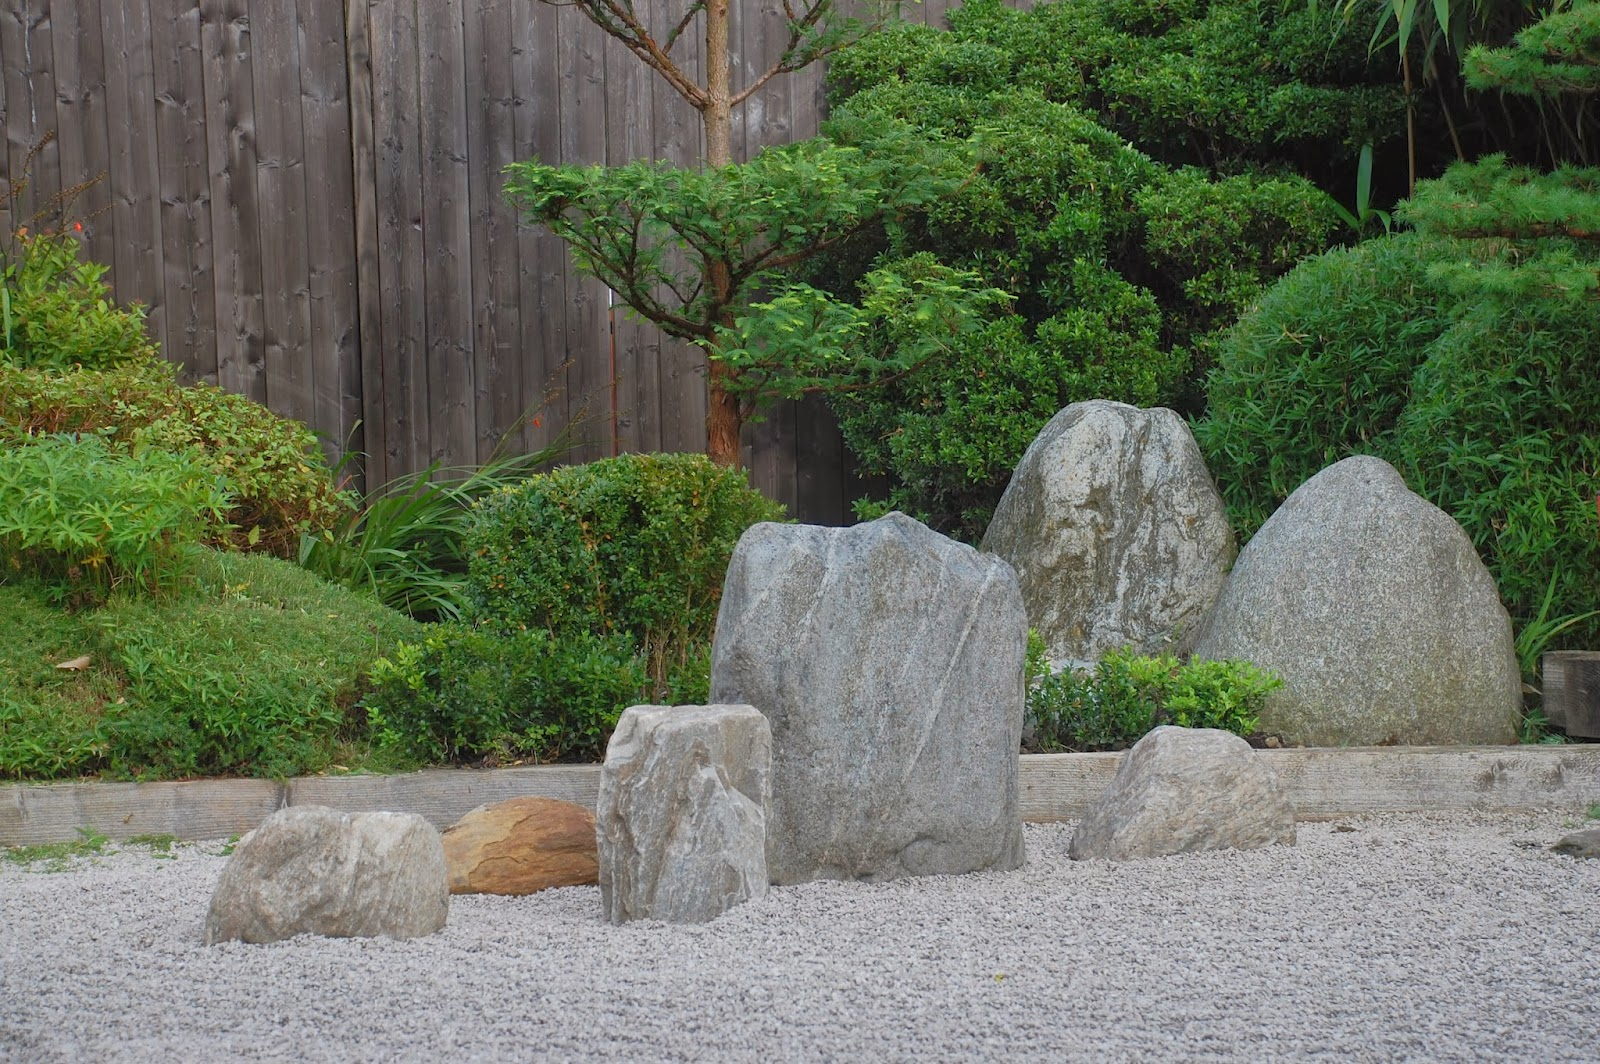 Japanese Garden Design Use of Stones | Home Gardening Basics on zen gardens in japan, okinawa design, zen paint colors, zen doodle designs instruction, pool design, loft design, mail kiosk design, zen symbols, zen gardening, zen small backyard ideas, zen space, pergola design, zen gardens landscaping, landscape design, patio design, zen art, zen flowers,